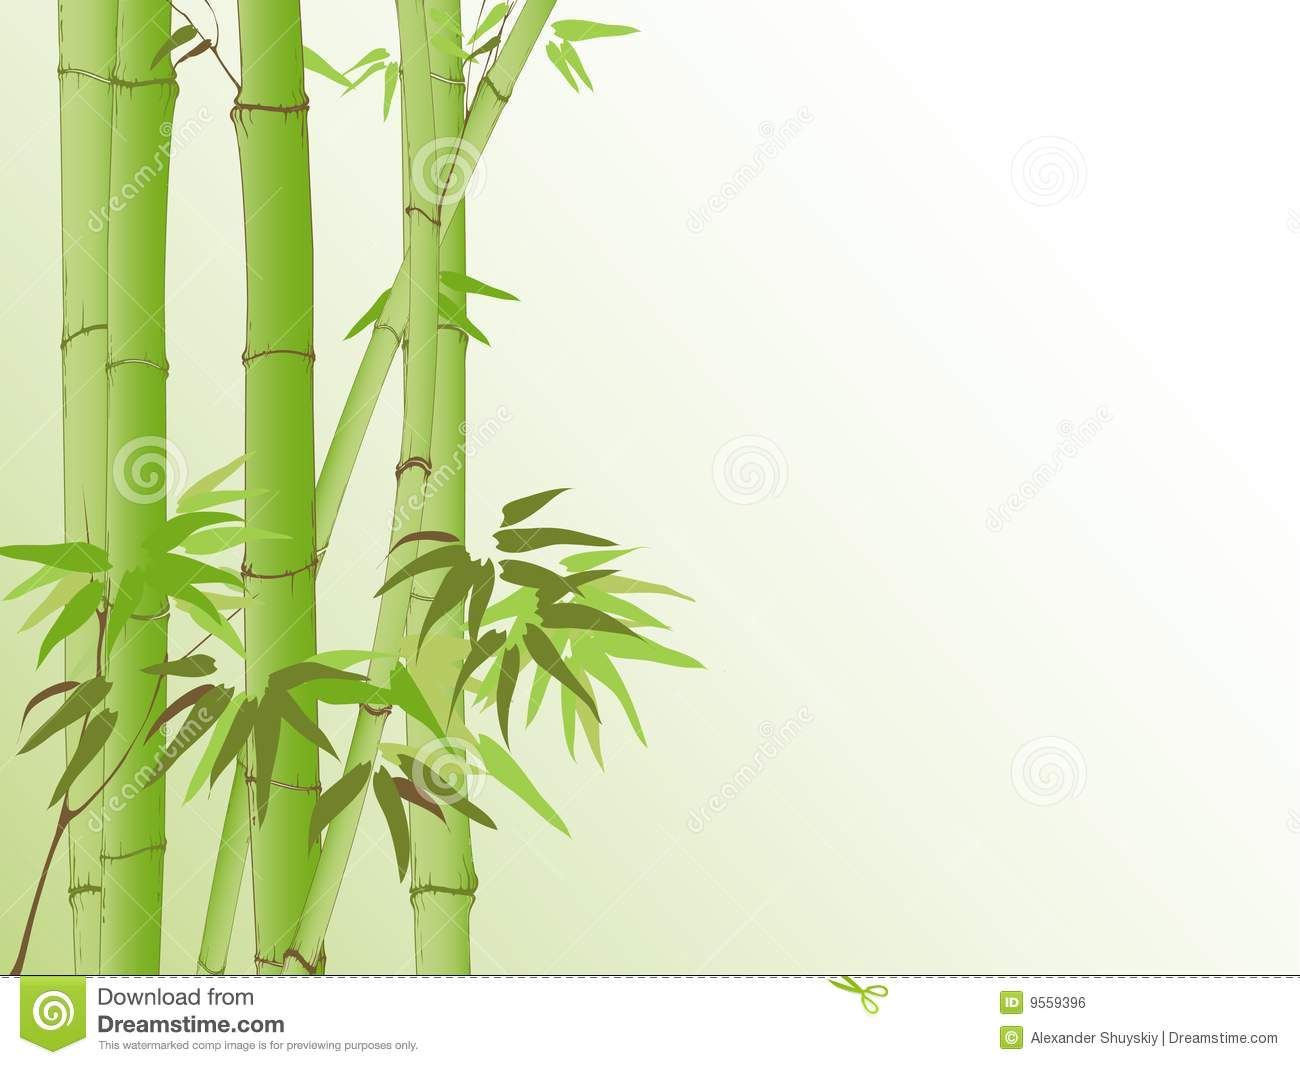 Chinese Calligraphy Wallpaper Hd Background With Bamboo Pattern Royalty Free Stock Image